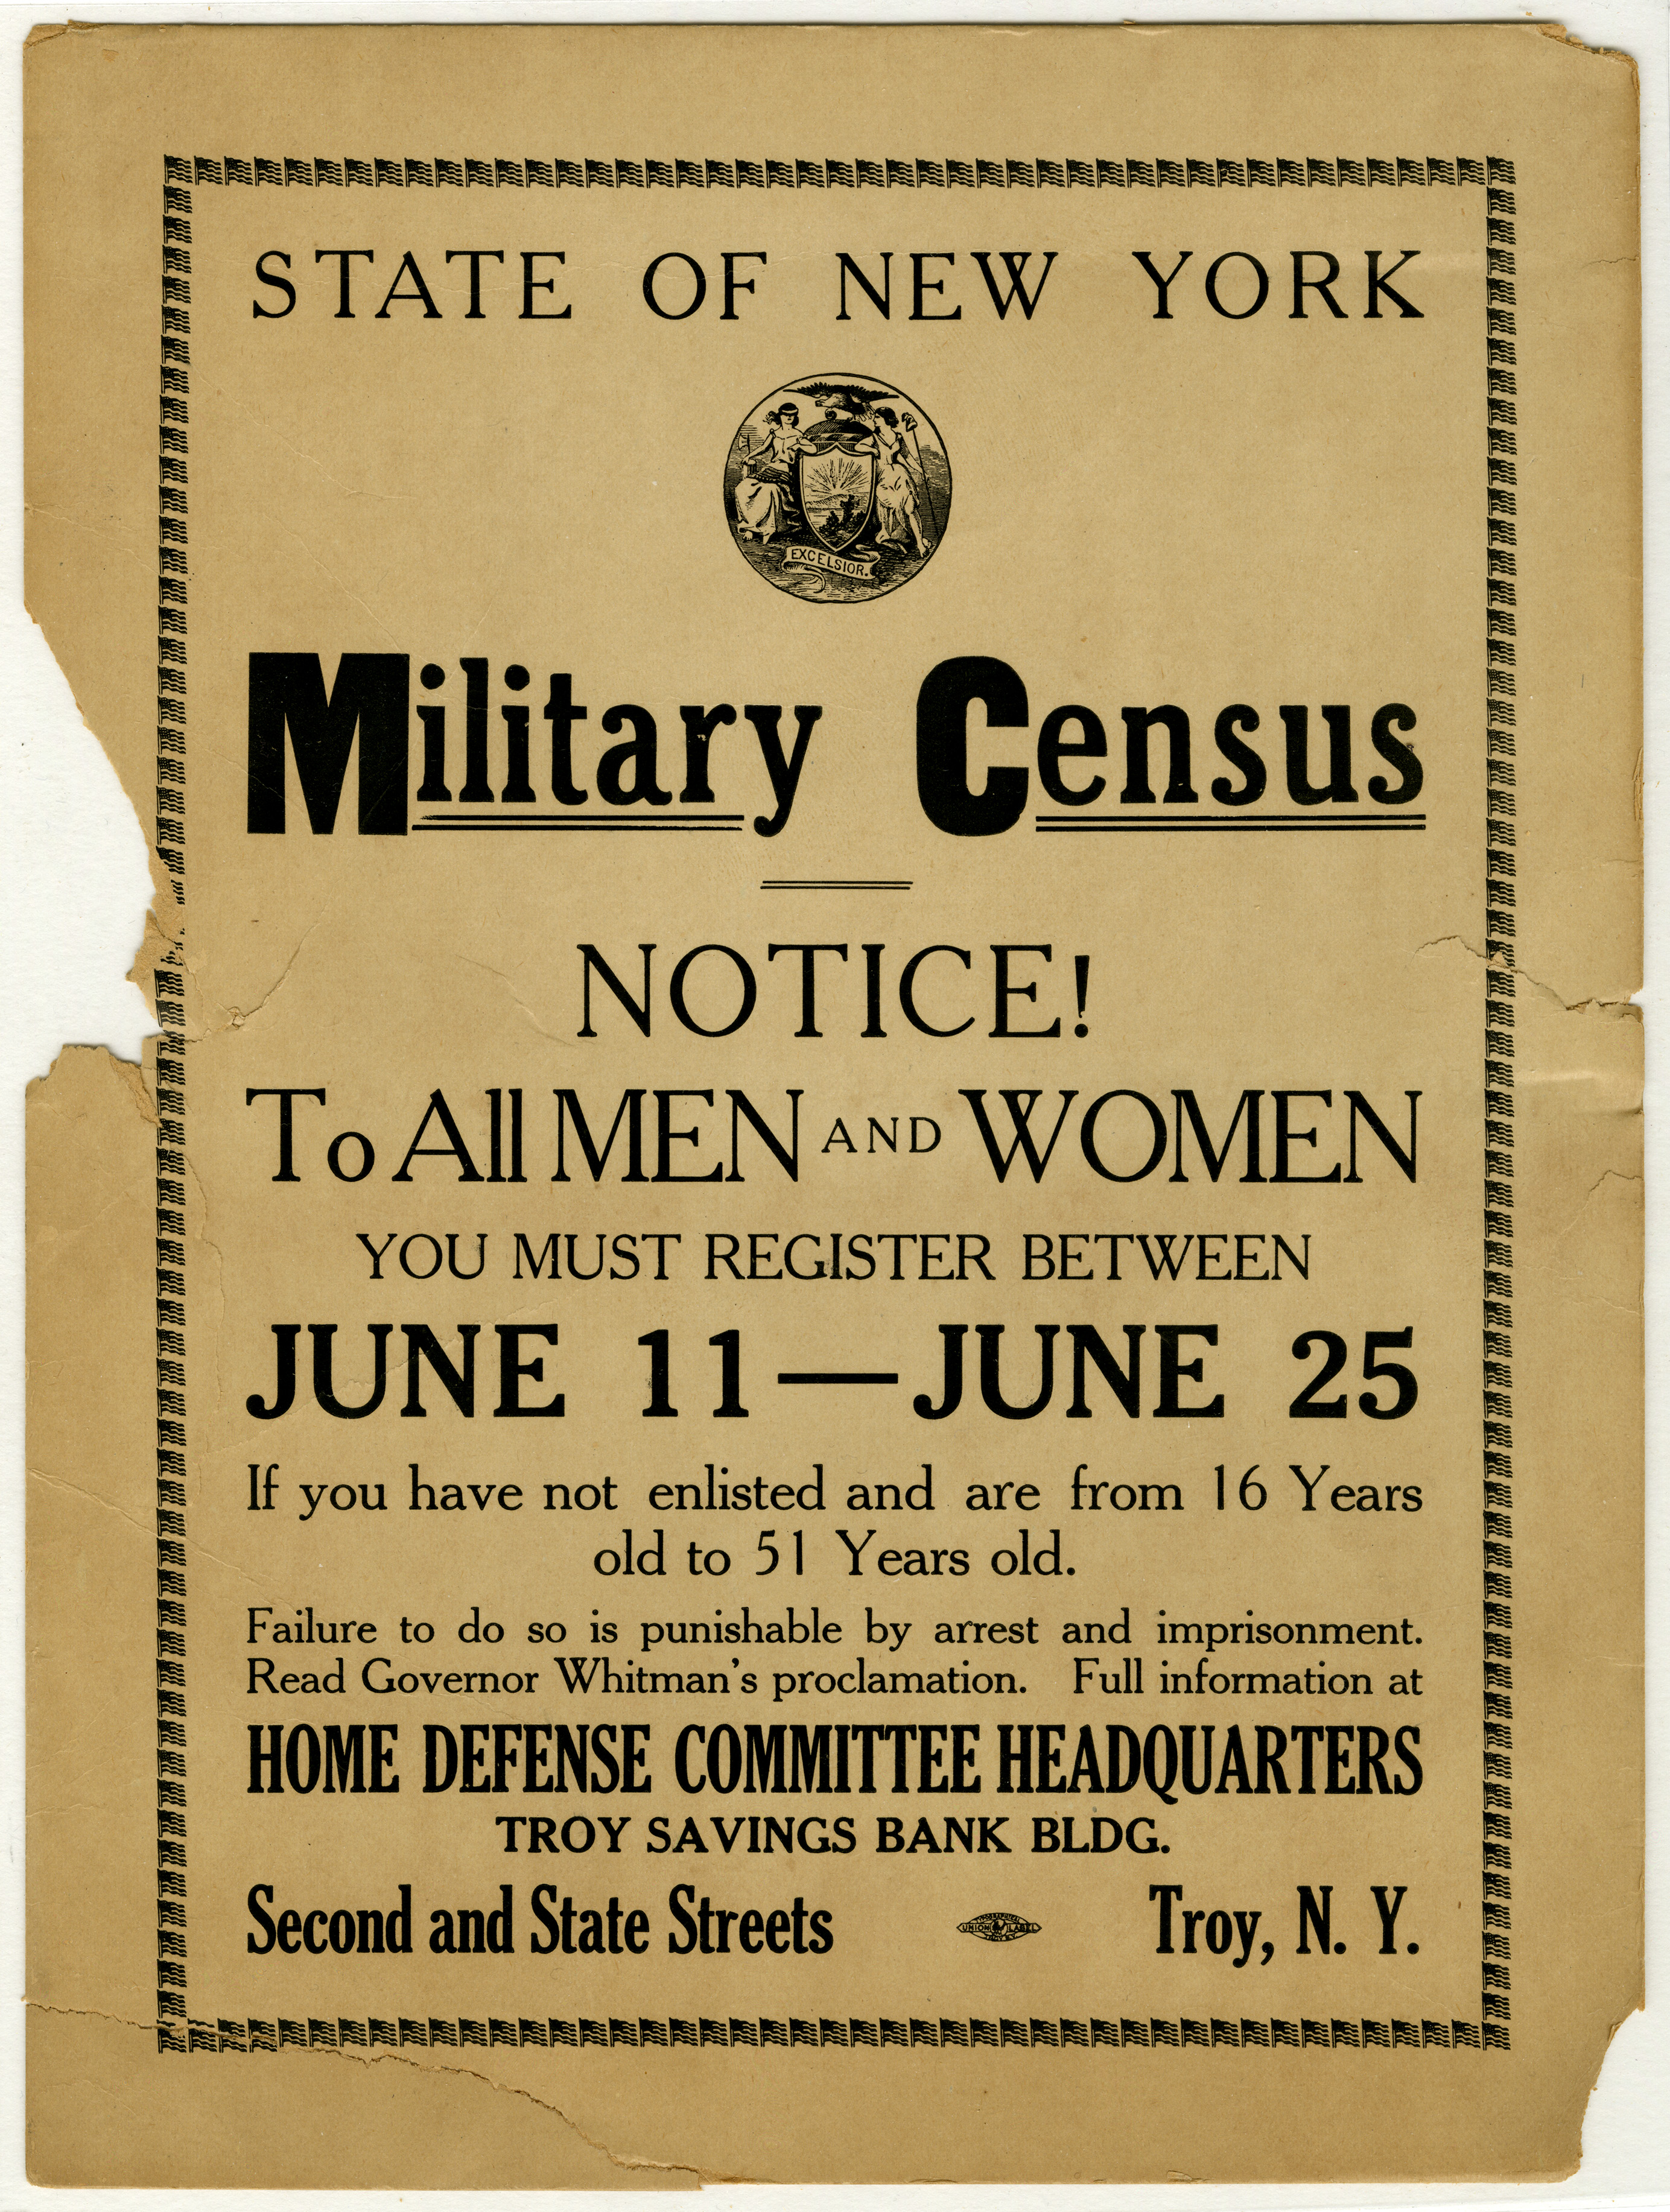 World War I Exhibition Photos | The New York State Museum